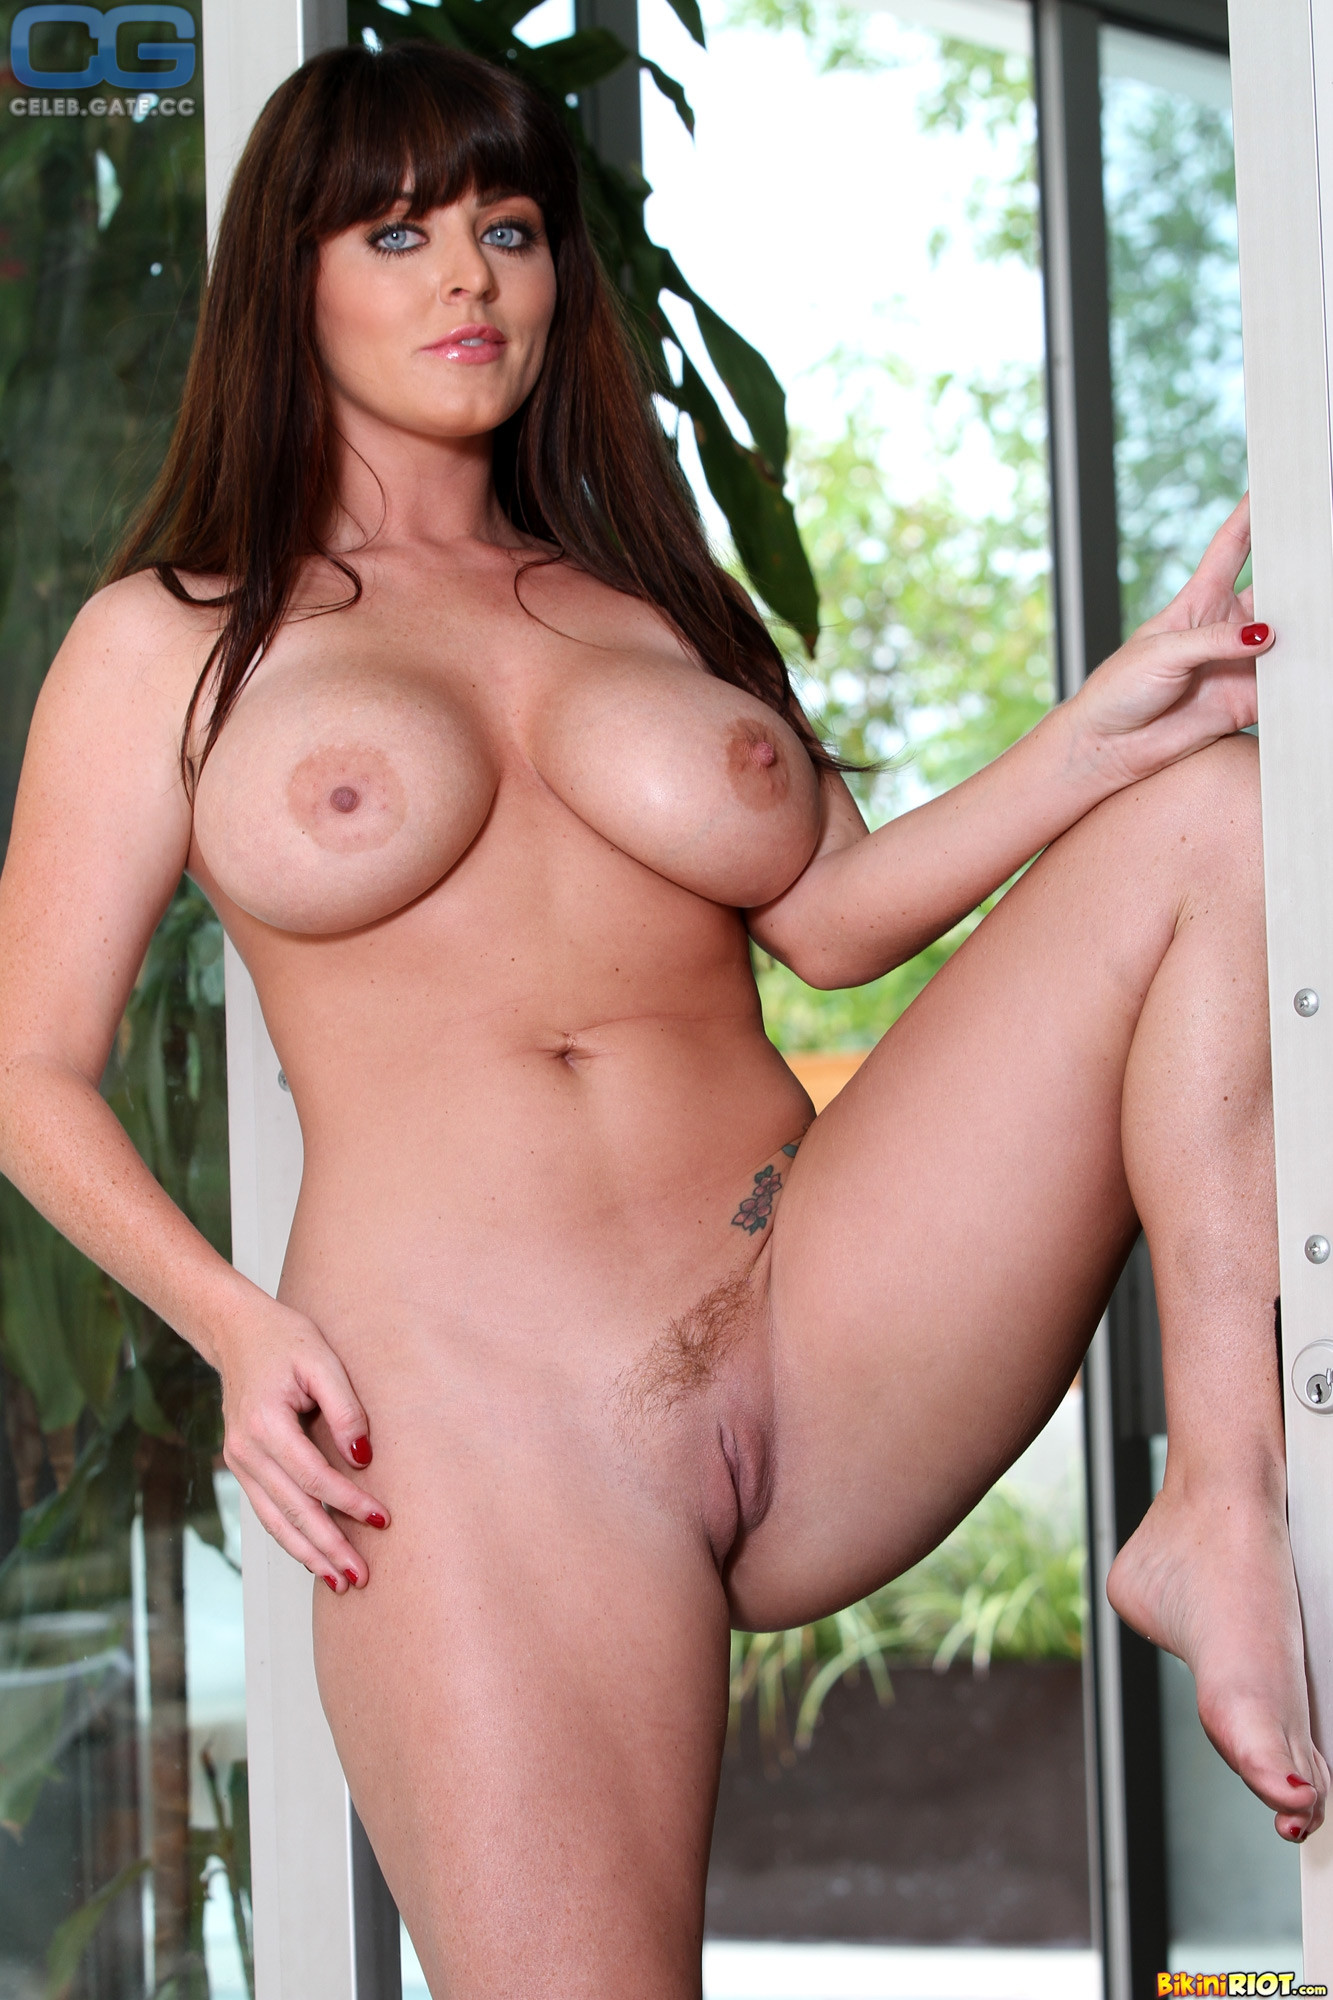 Sophie dee nude pictures